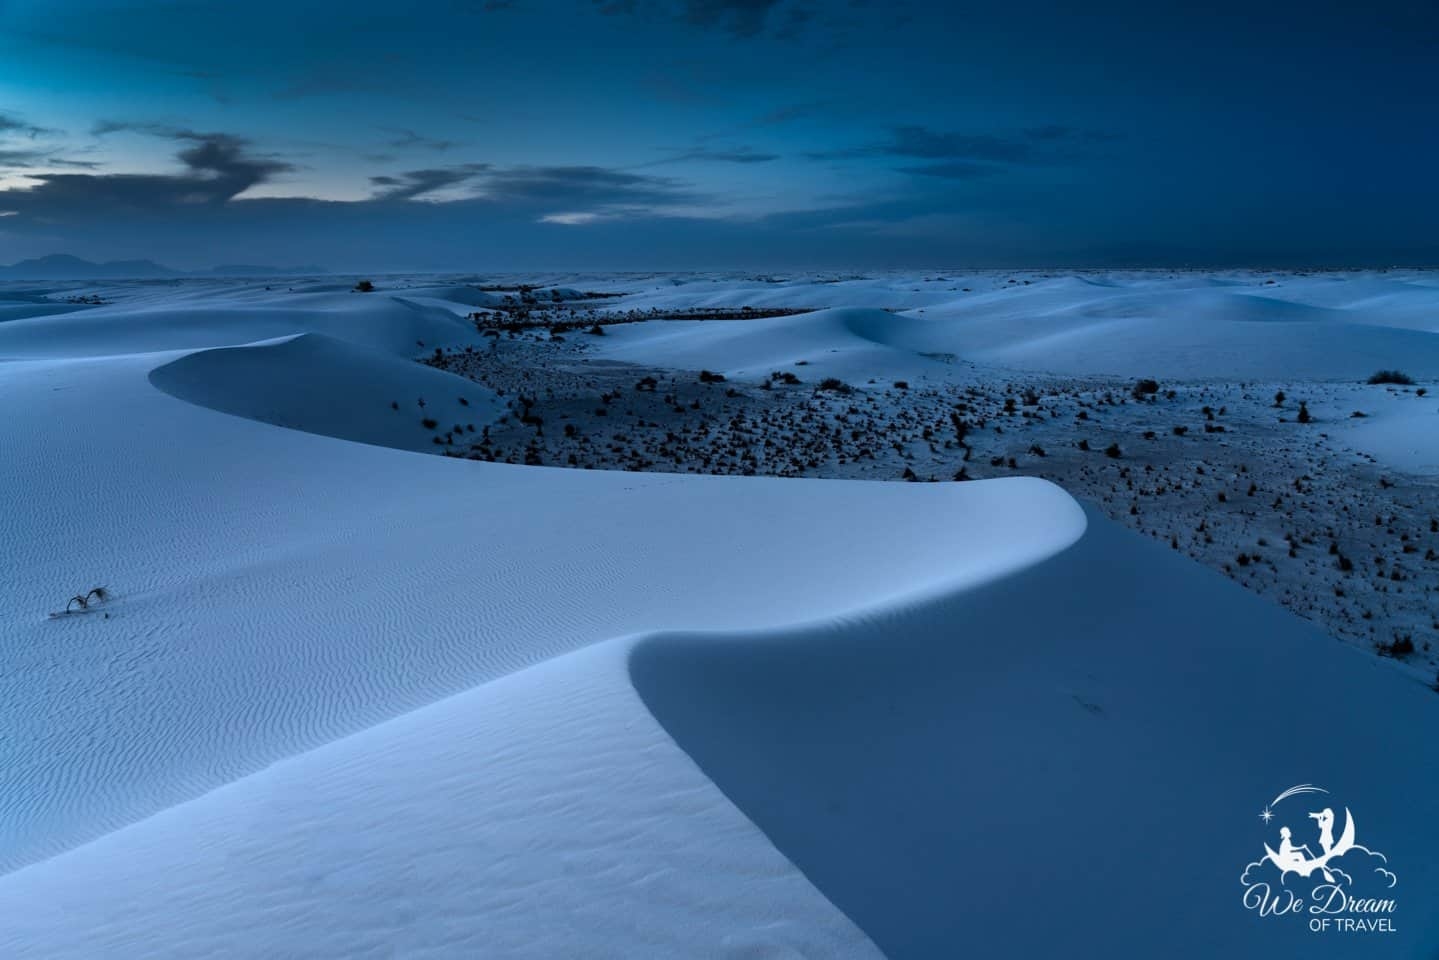 Moody White Sands picture showing the sand dunes after blue hour.